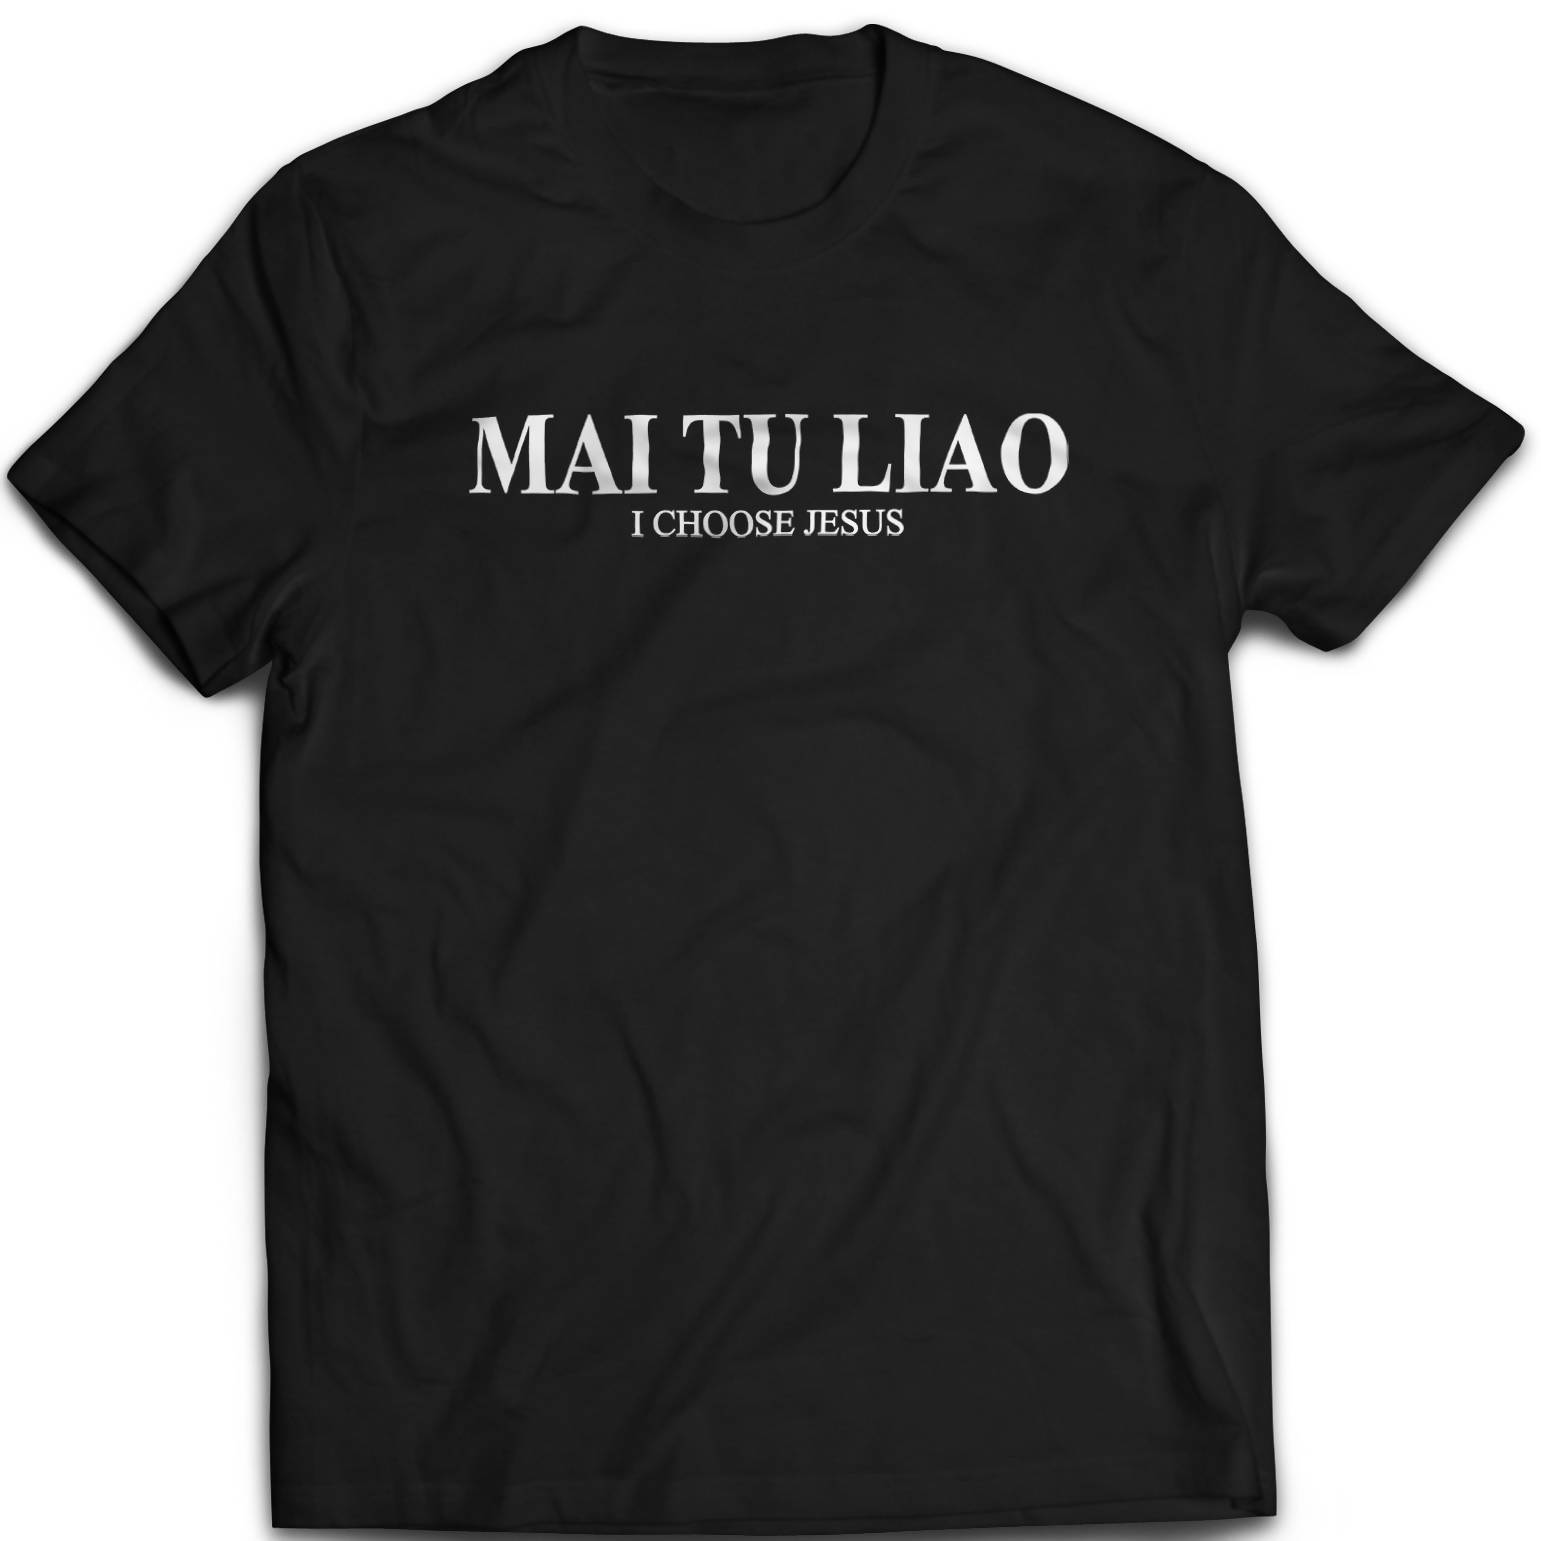 Mai Tu Liao Tshirt Unisex (Black) - I'm a Singaporean Christian Lah! Series - Local T-shirts - The Super Blessed - Naiise